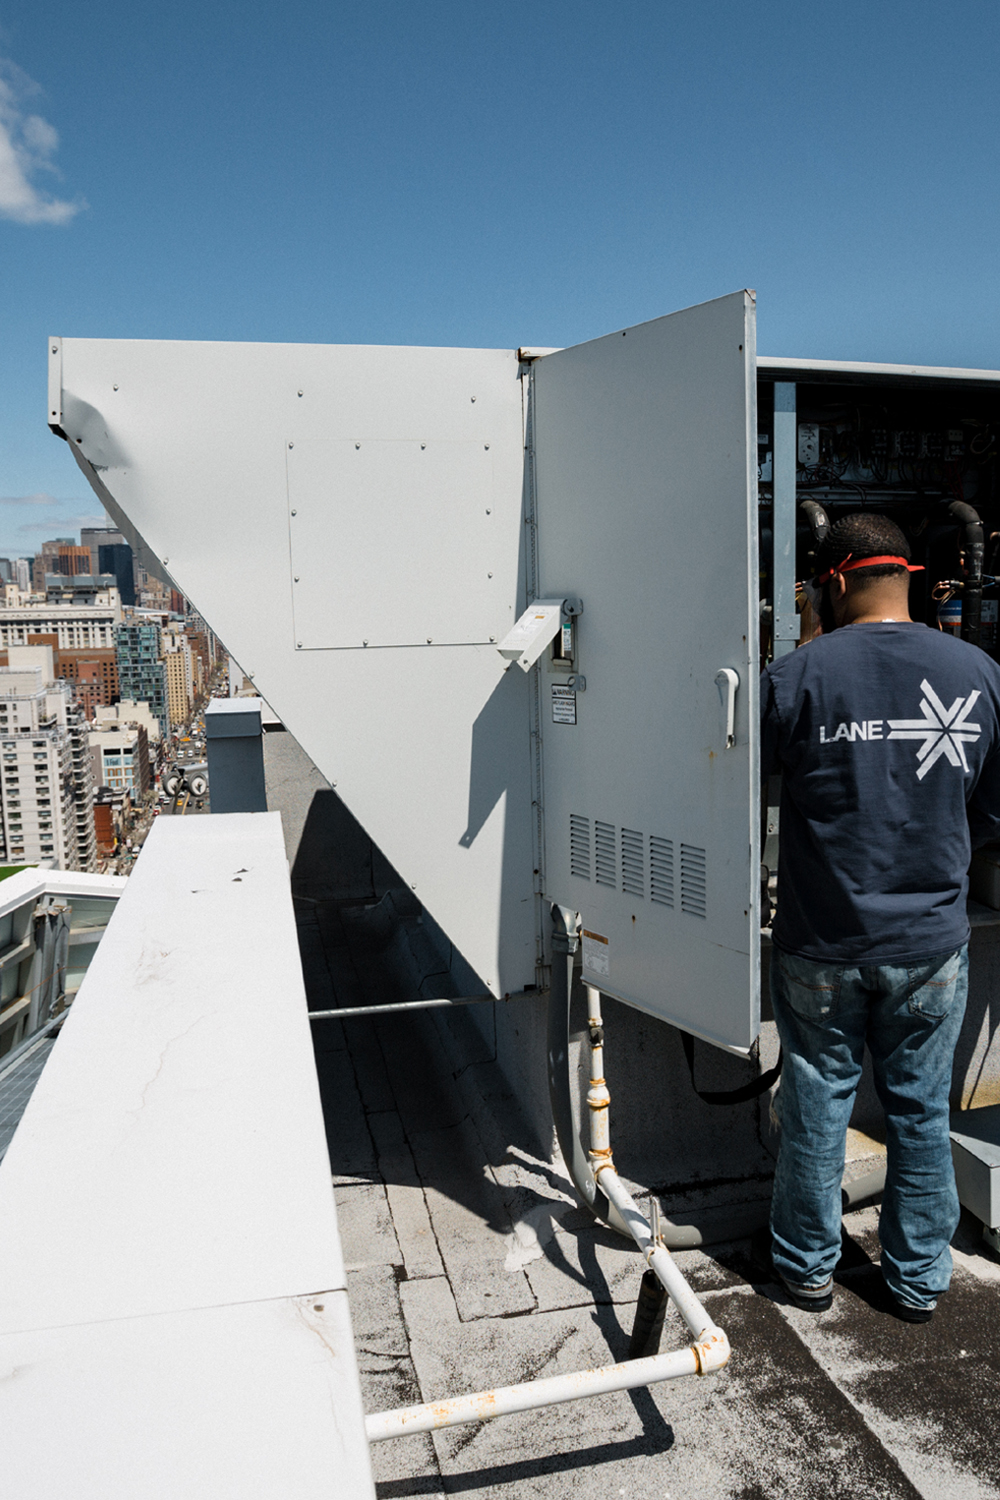 Servicing a Rooftop Heating Unit